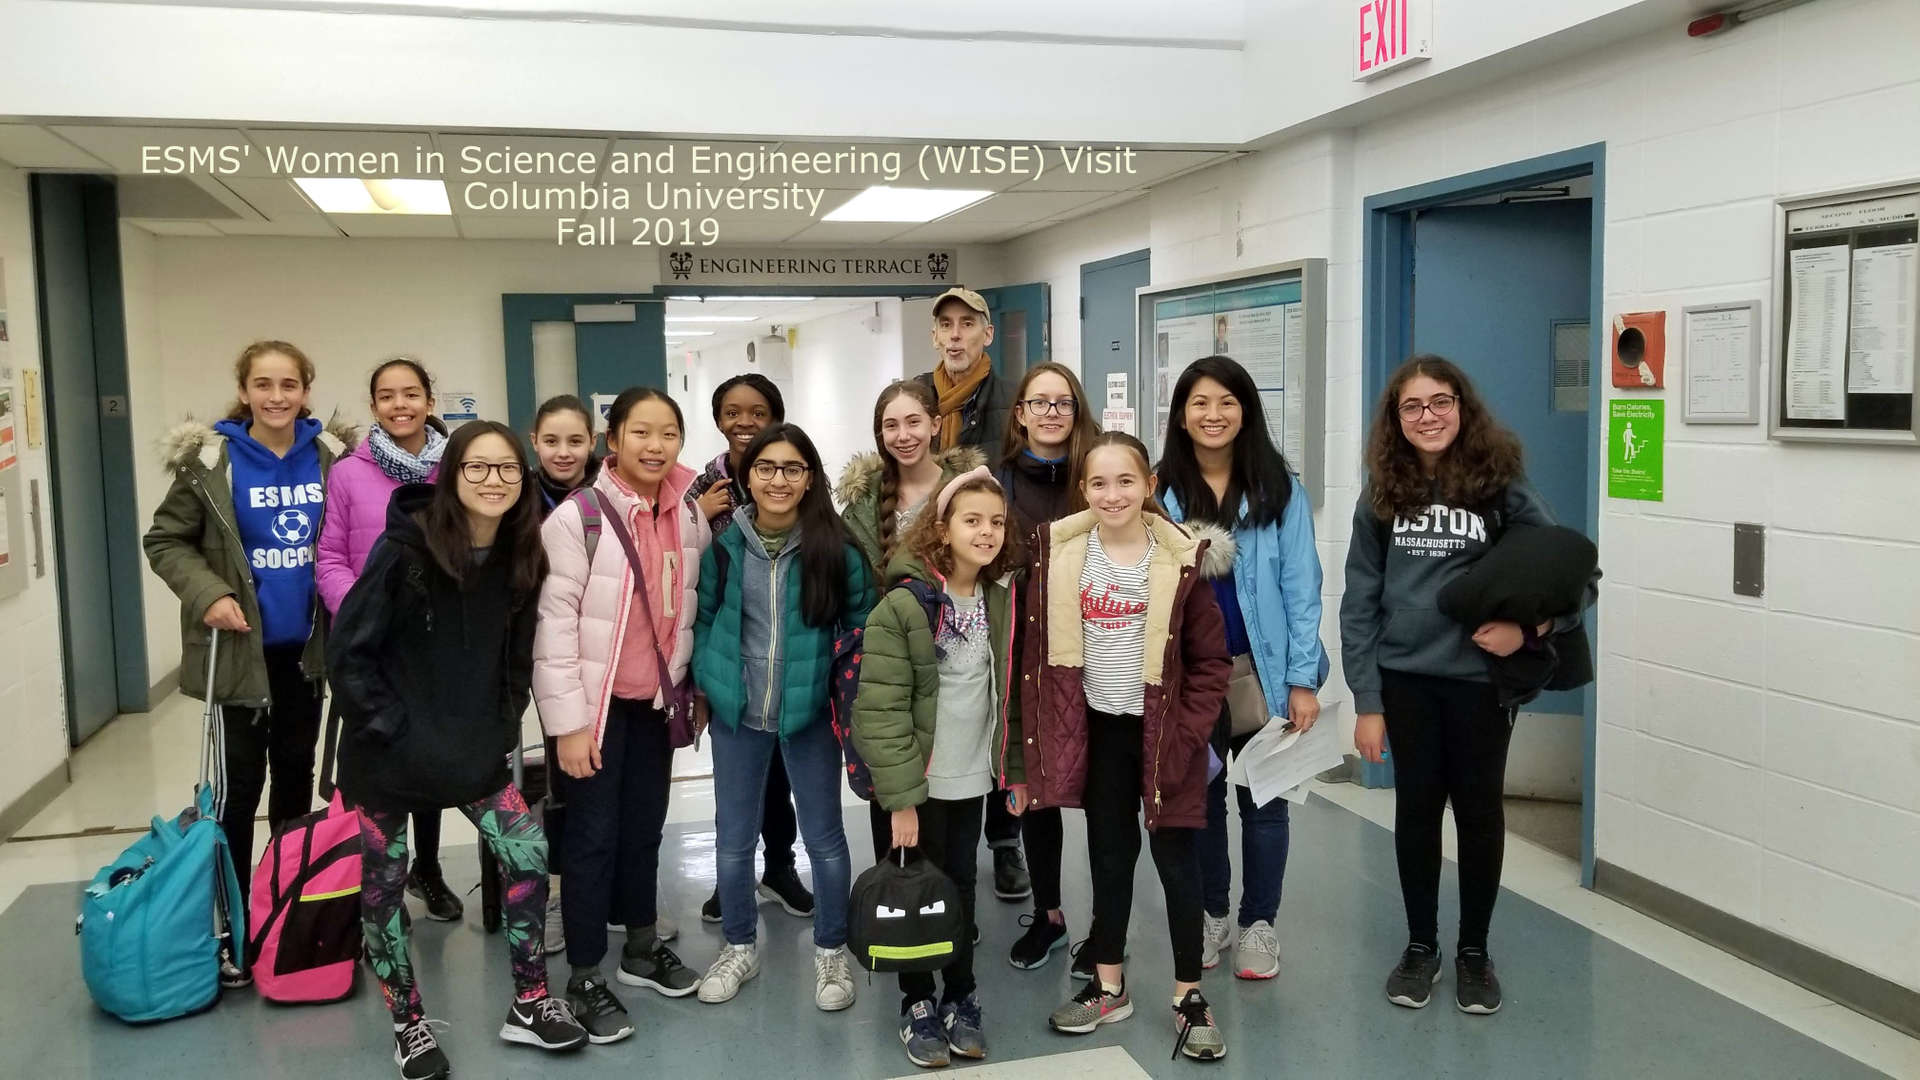 Photo of our Women in Science and Enginering Club visiting Columbia University in November 2019